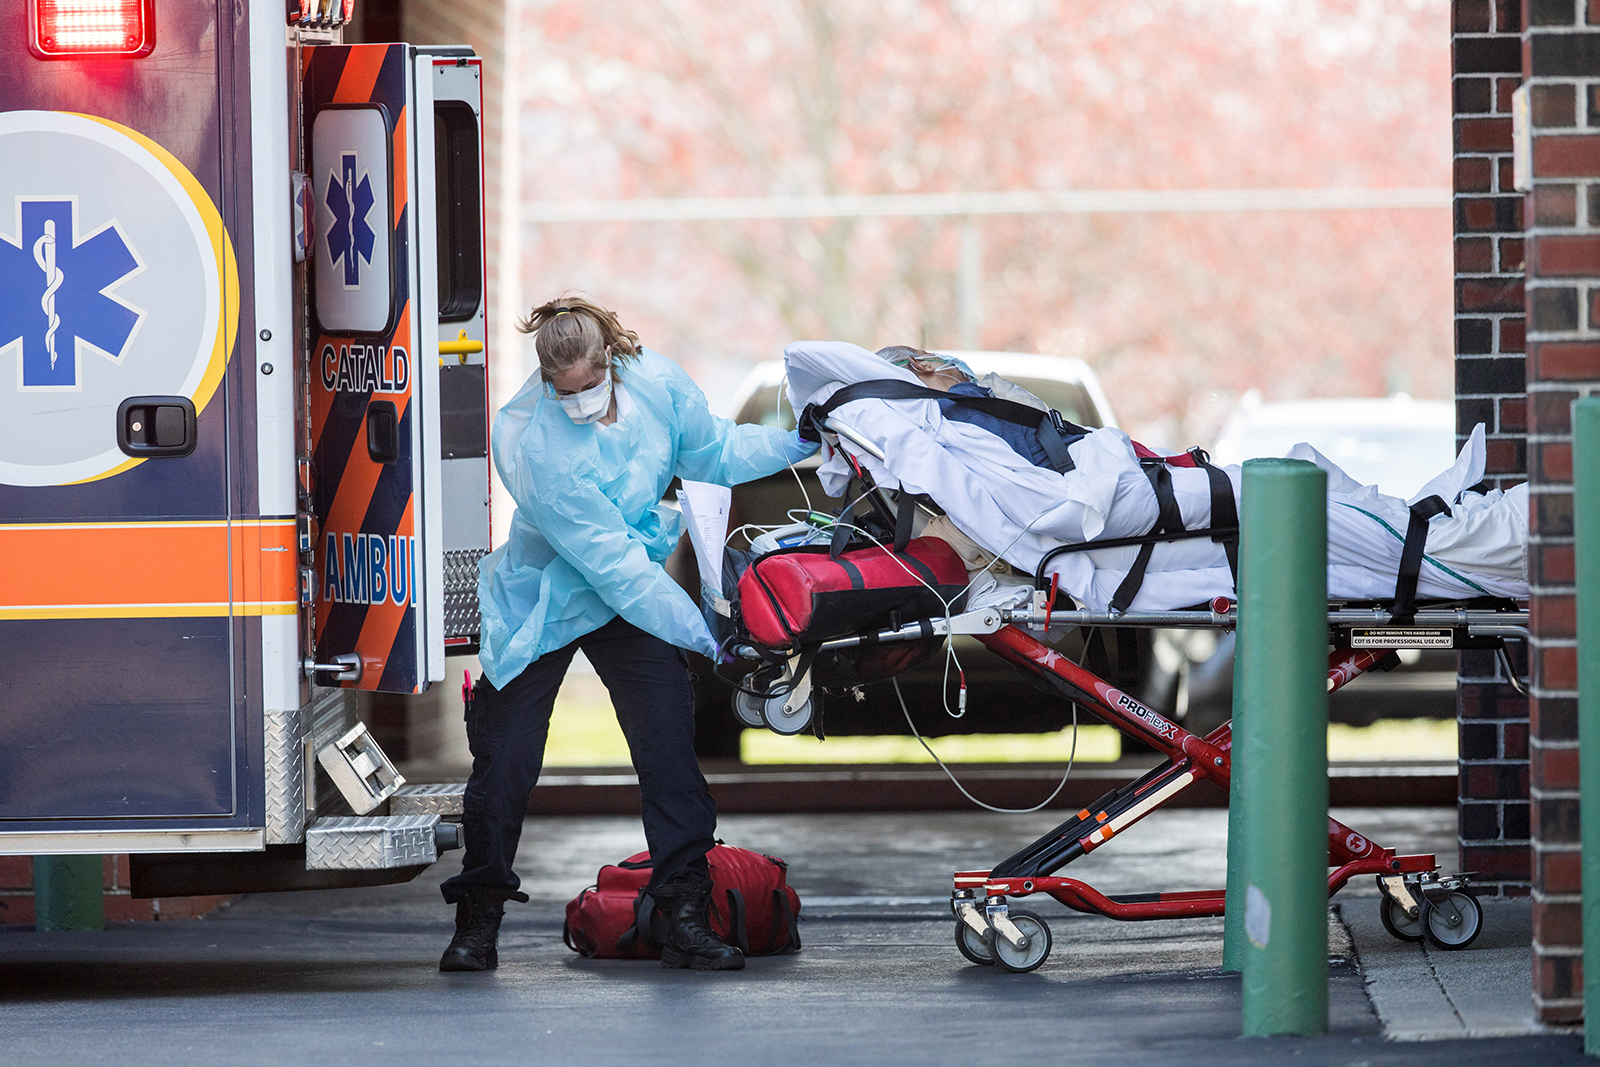 In this April 17 file photo, first responders load a patient into an ambulance from a nursing home where multiple people have contracted Covid-19 in Chelsea, Massachusetts.